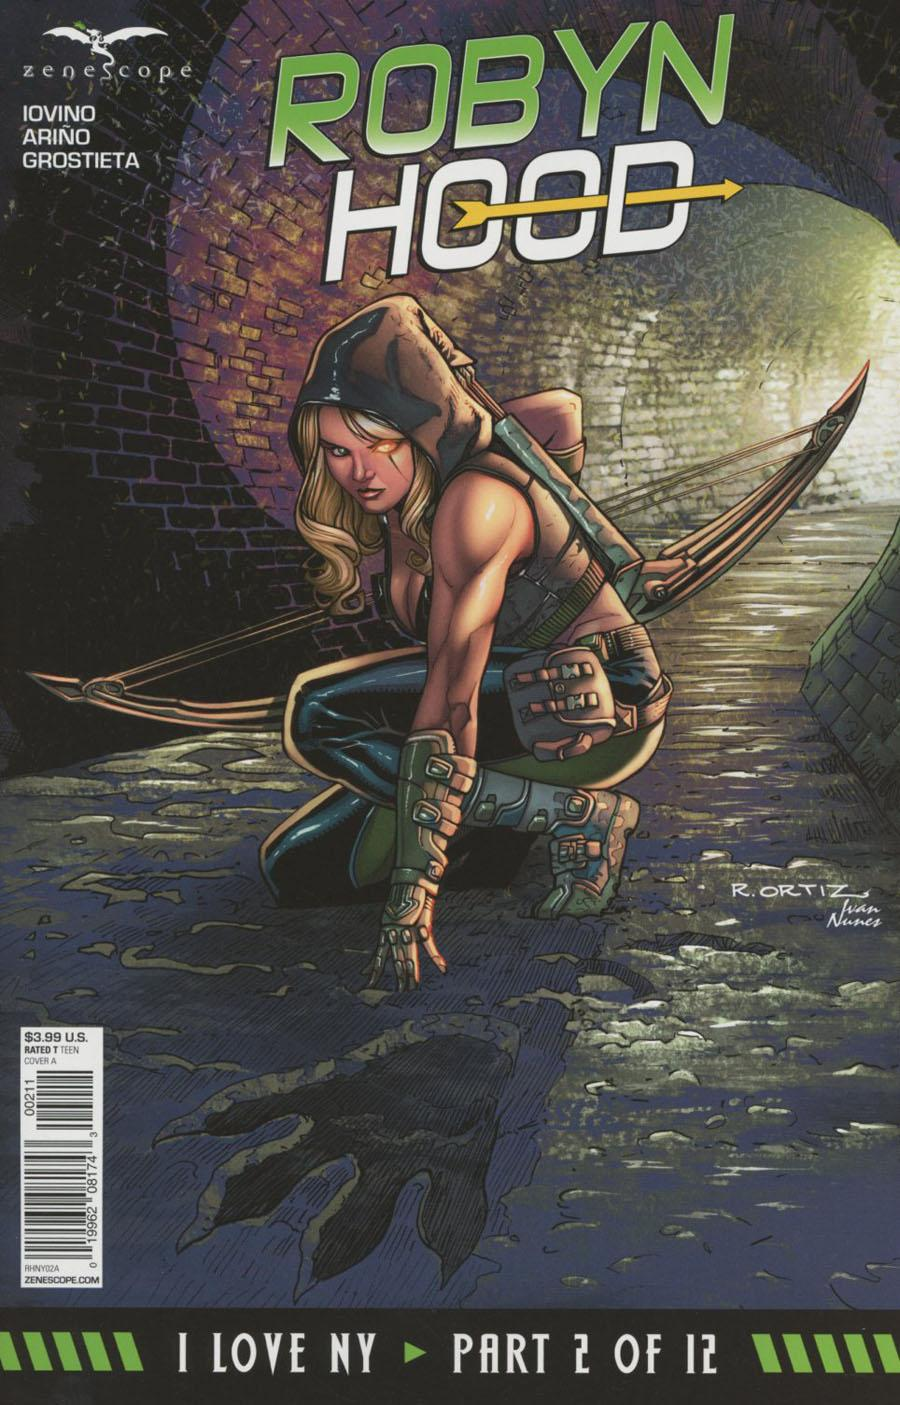 Grimm Fairy Tales Presents Robyn Hood I Love NY Vol. 1 #2